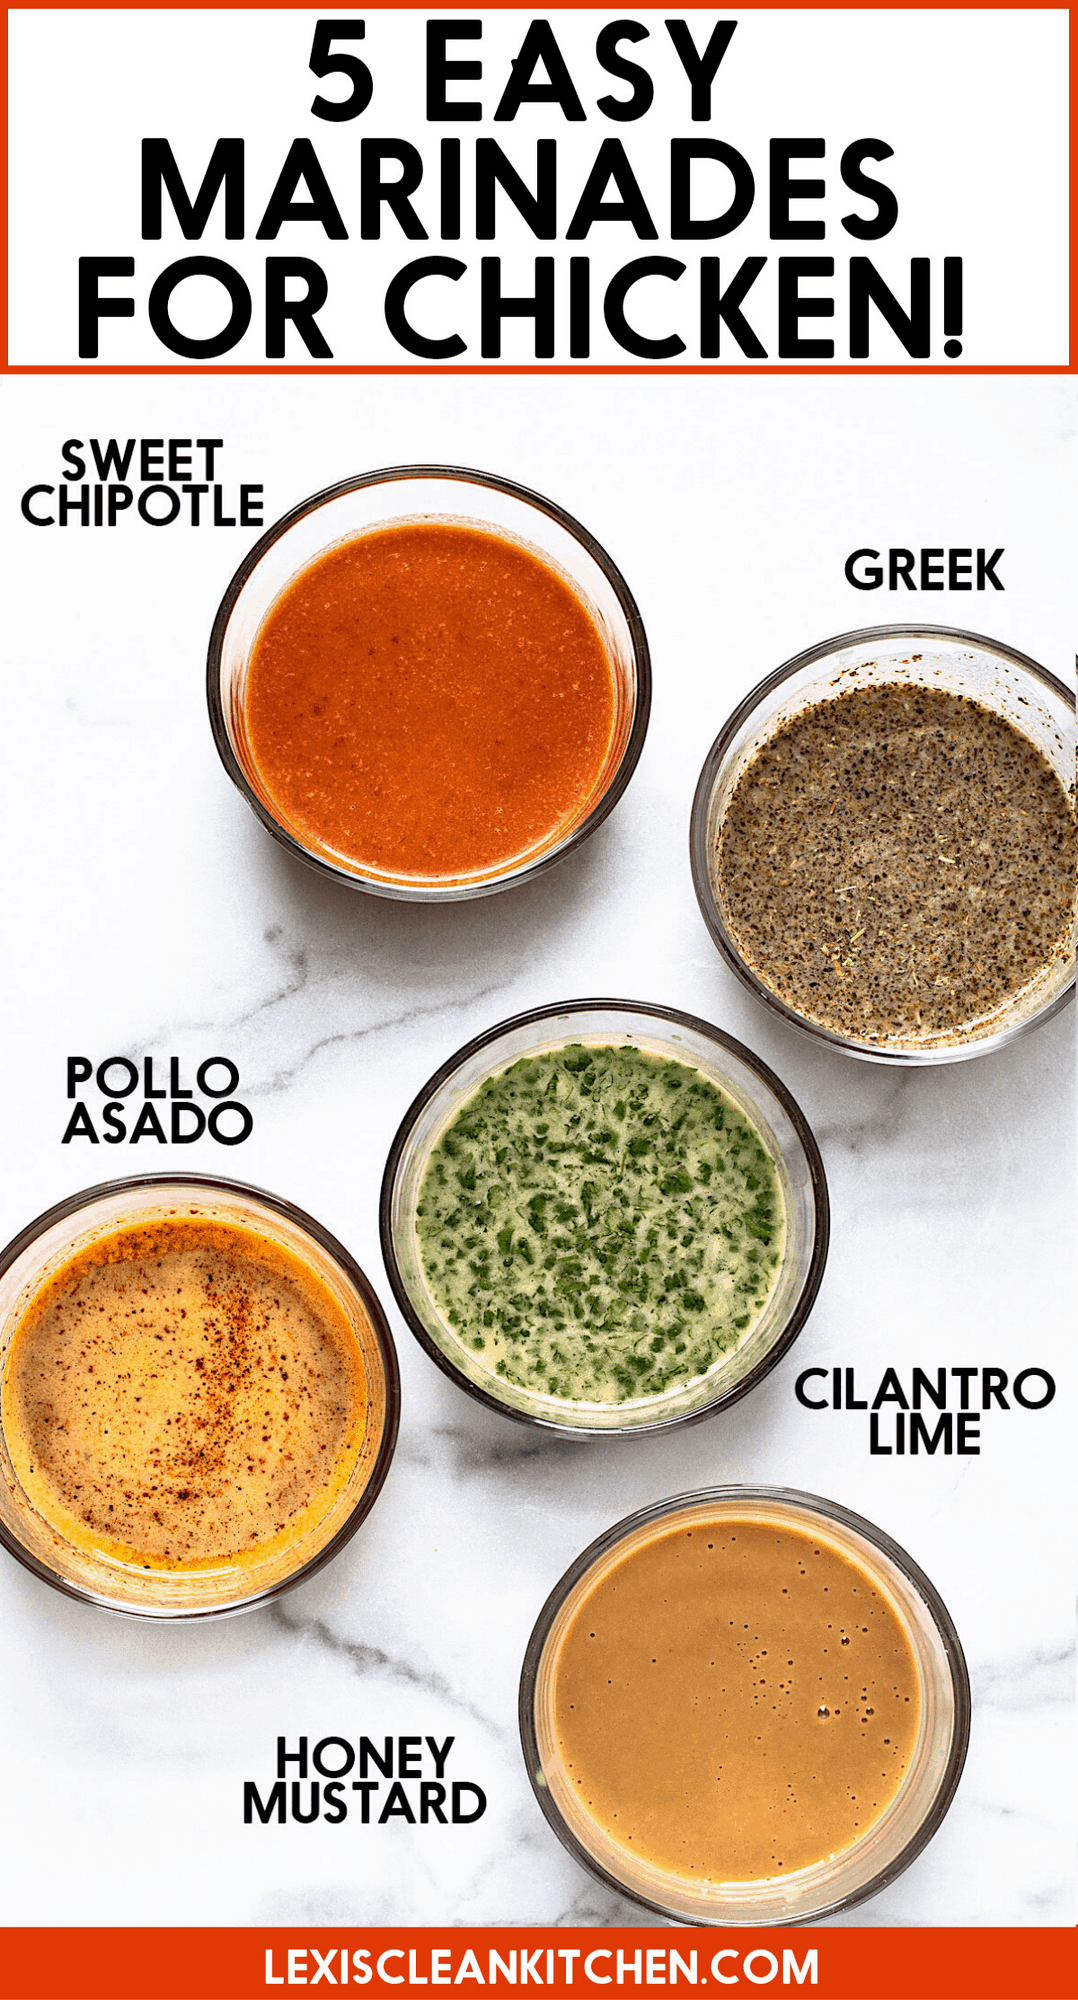 Easy chicken marinades in 5 different bowls.